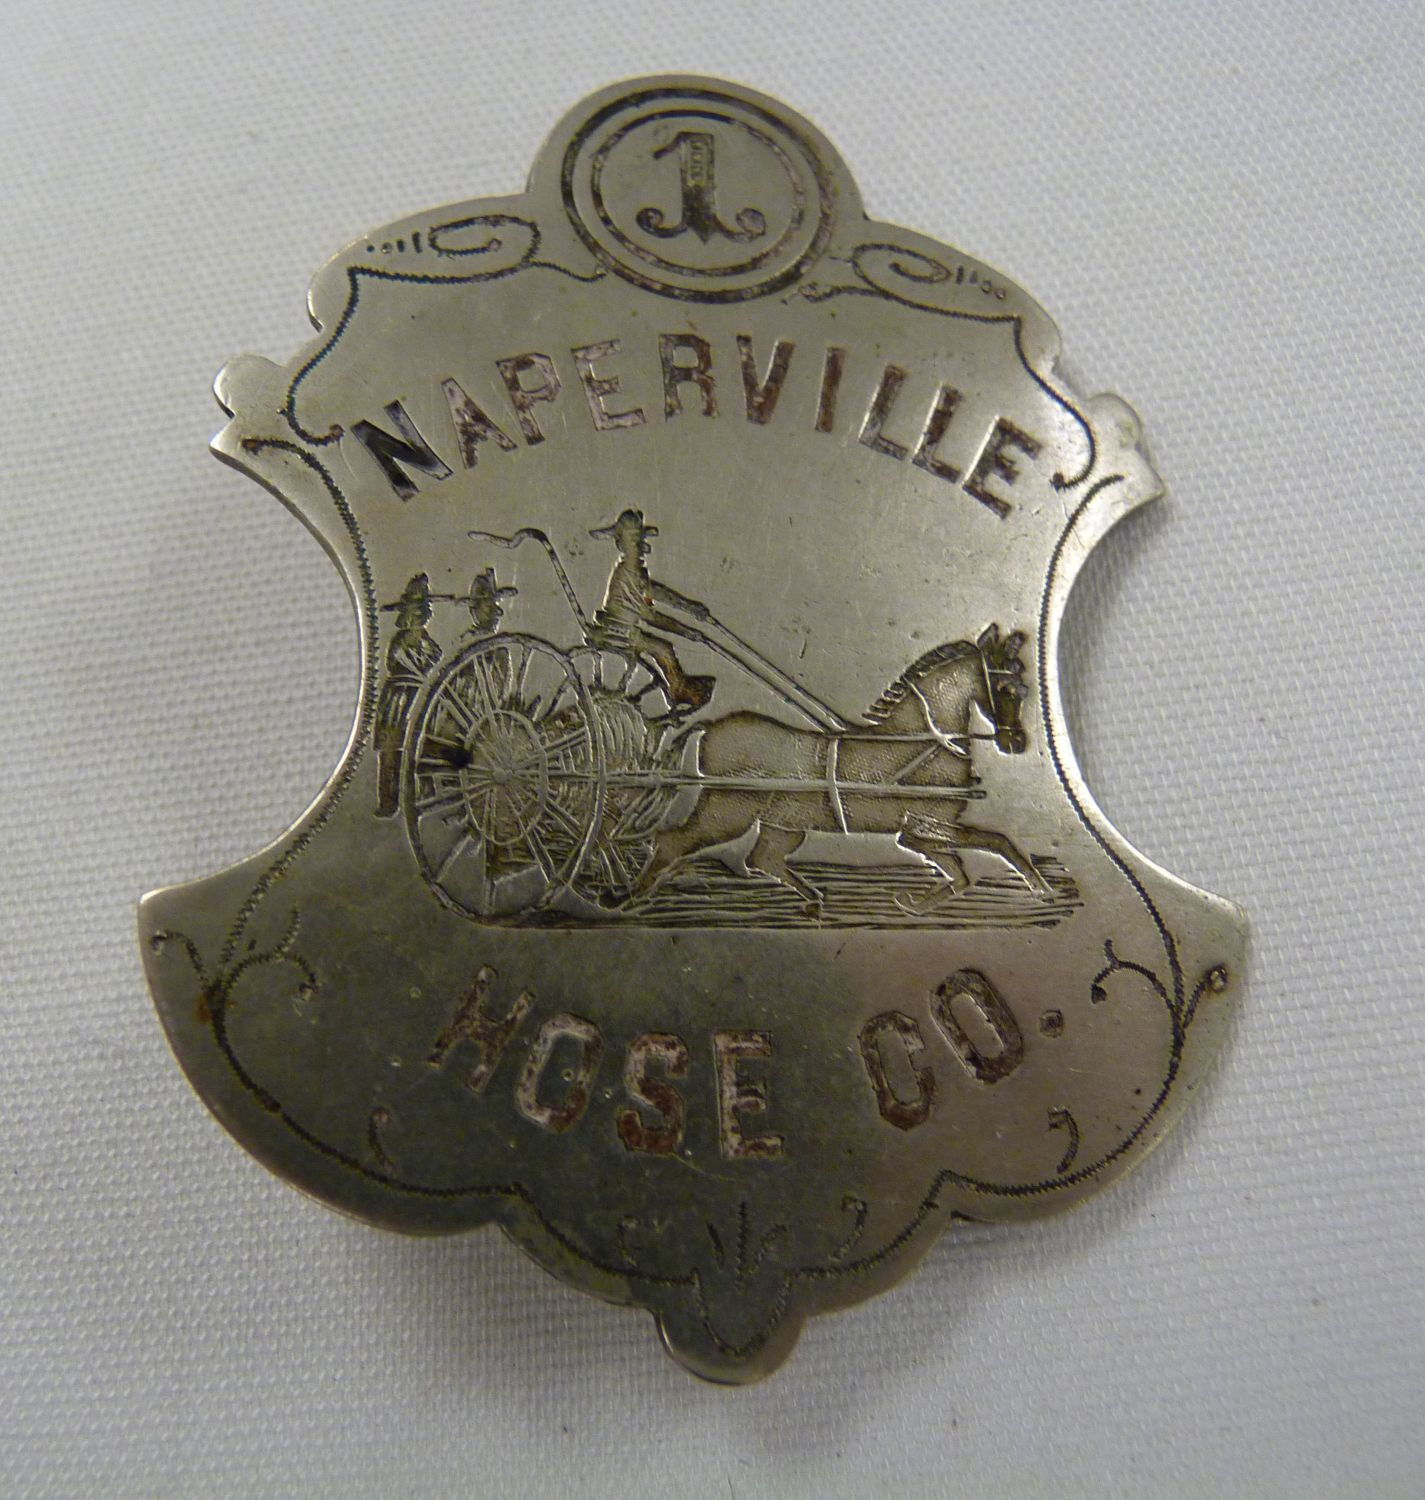 Naperville Hose Co badge